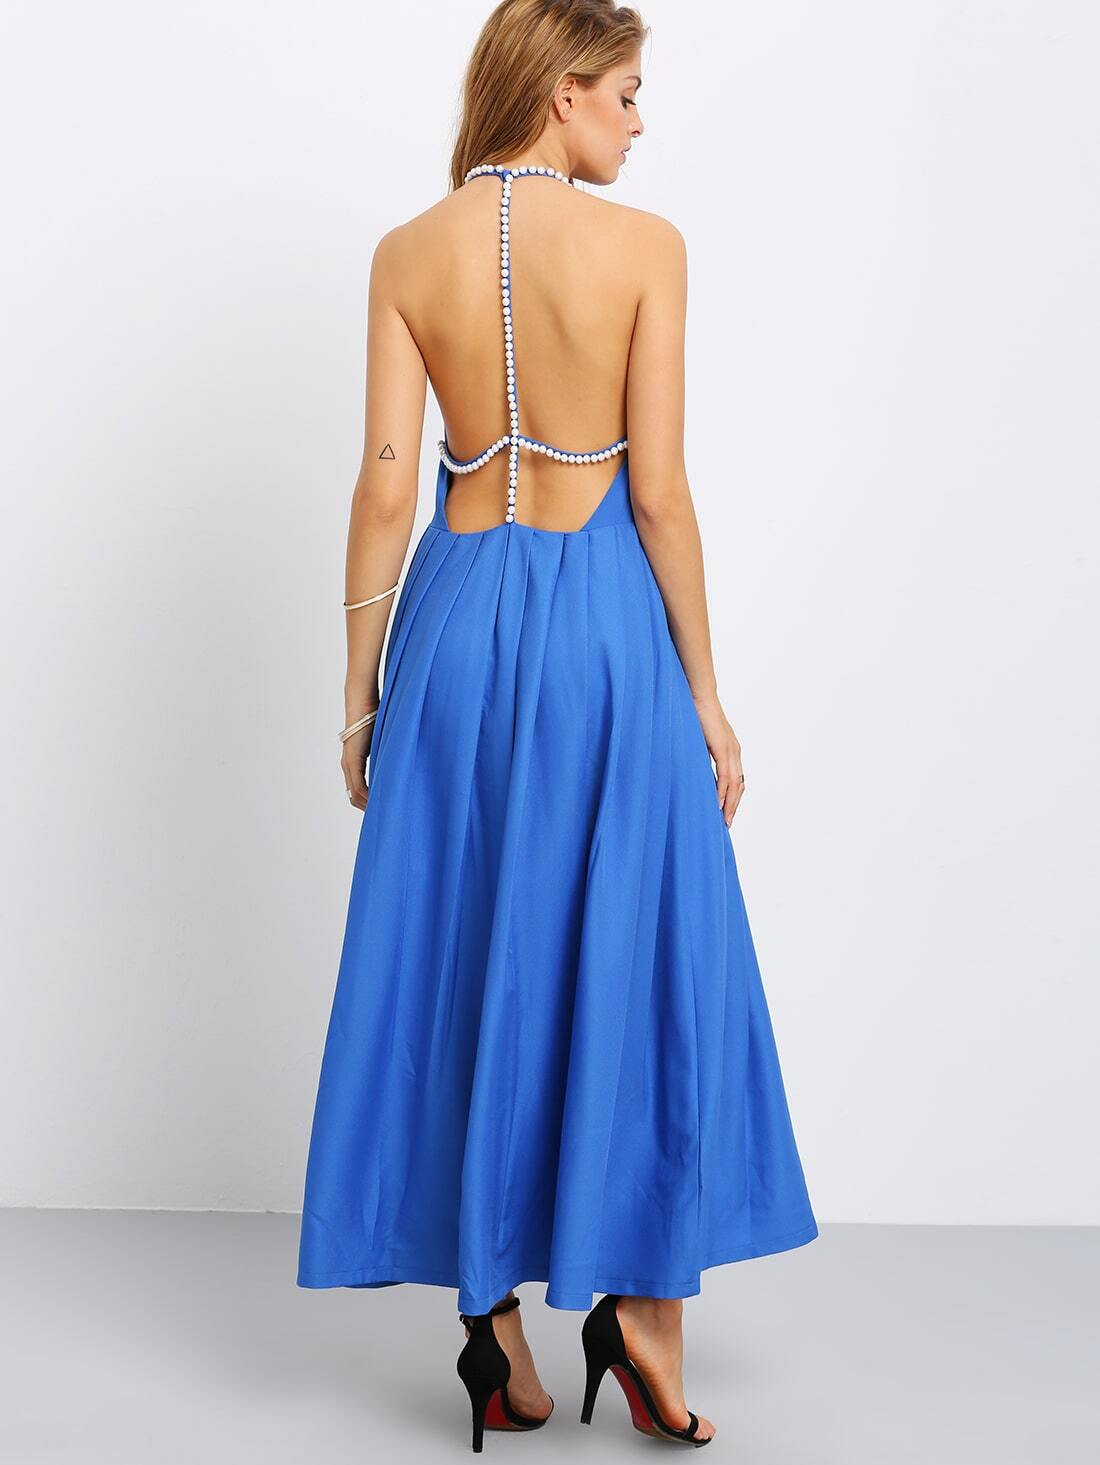 Blue Pearl Trimmed Neck Backless Pleated Dress Shein